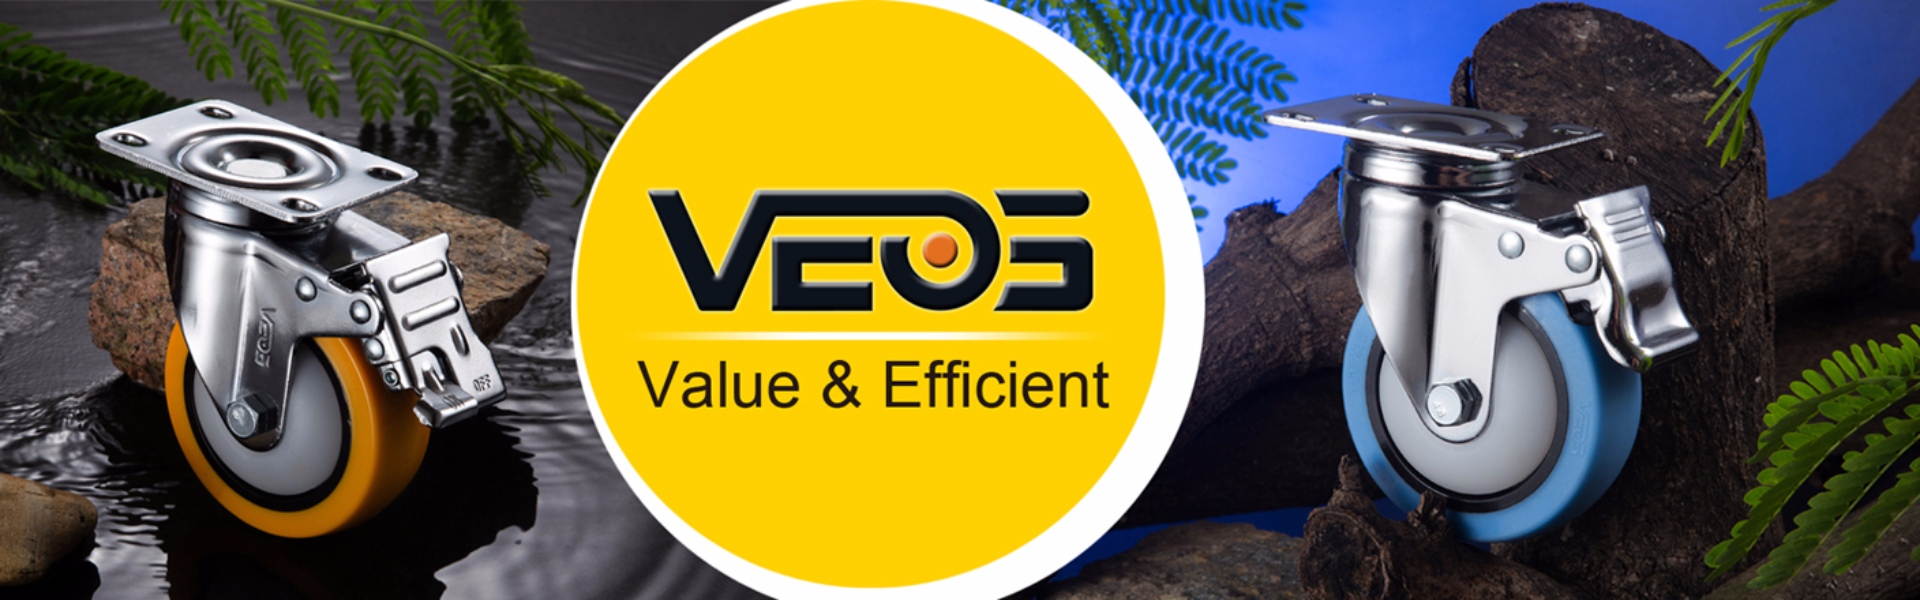 VEOS Caster Manufacturing Co. Ltd.